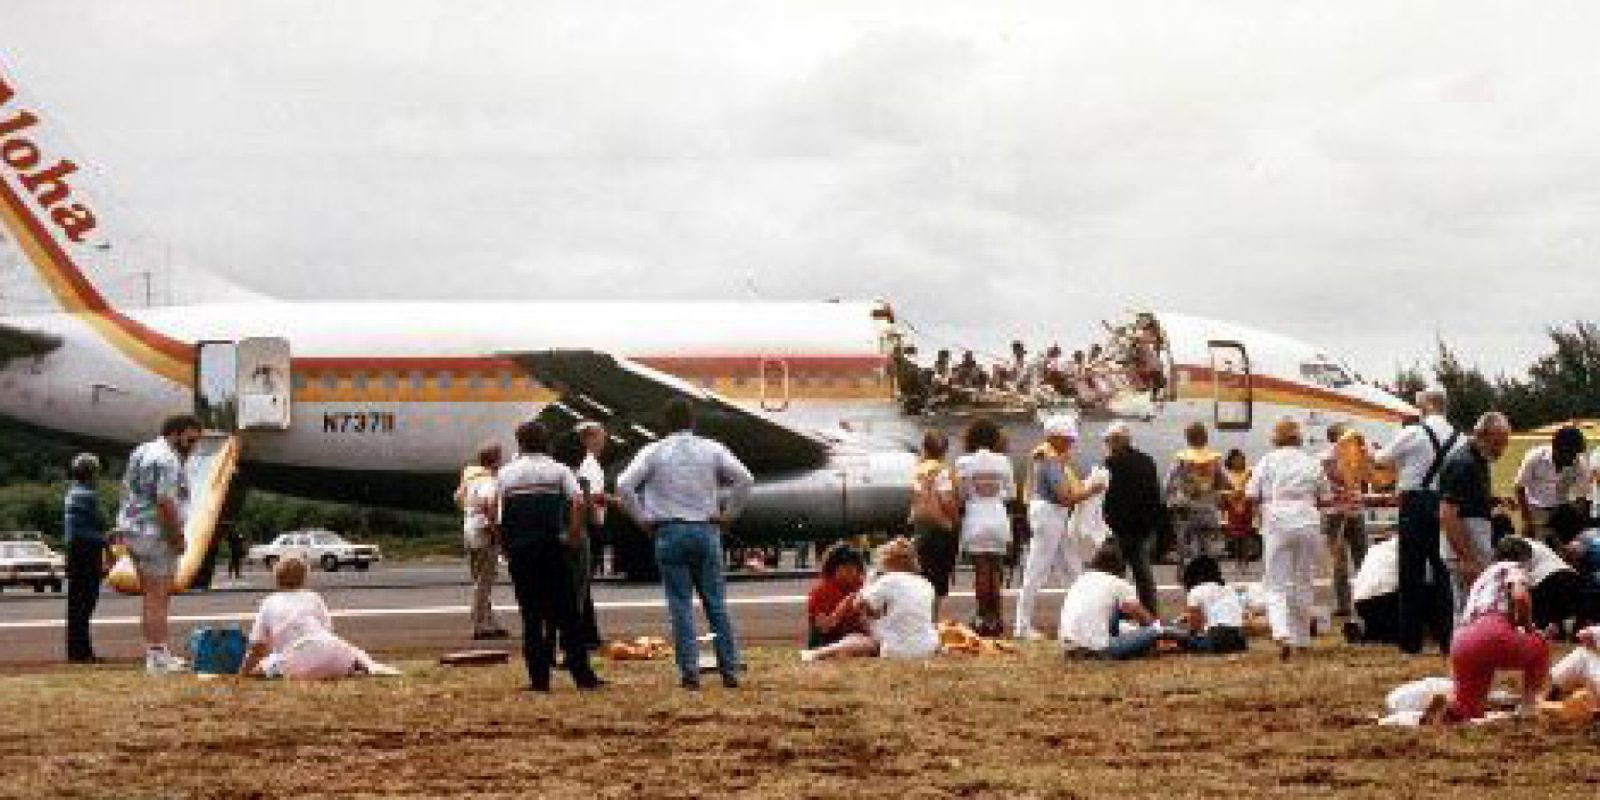 How Heroic Aloha Airlines Flight 243 Pilots Managed To